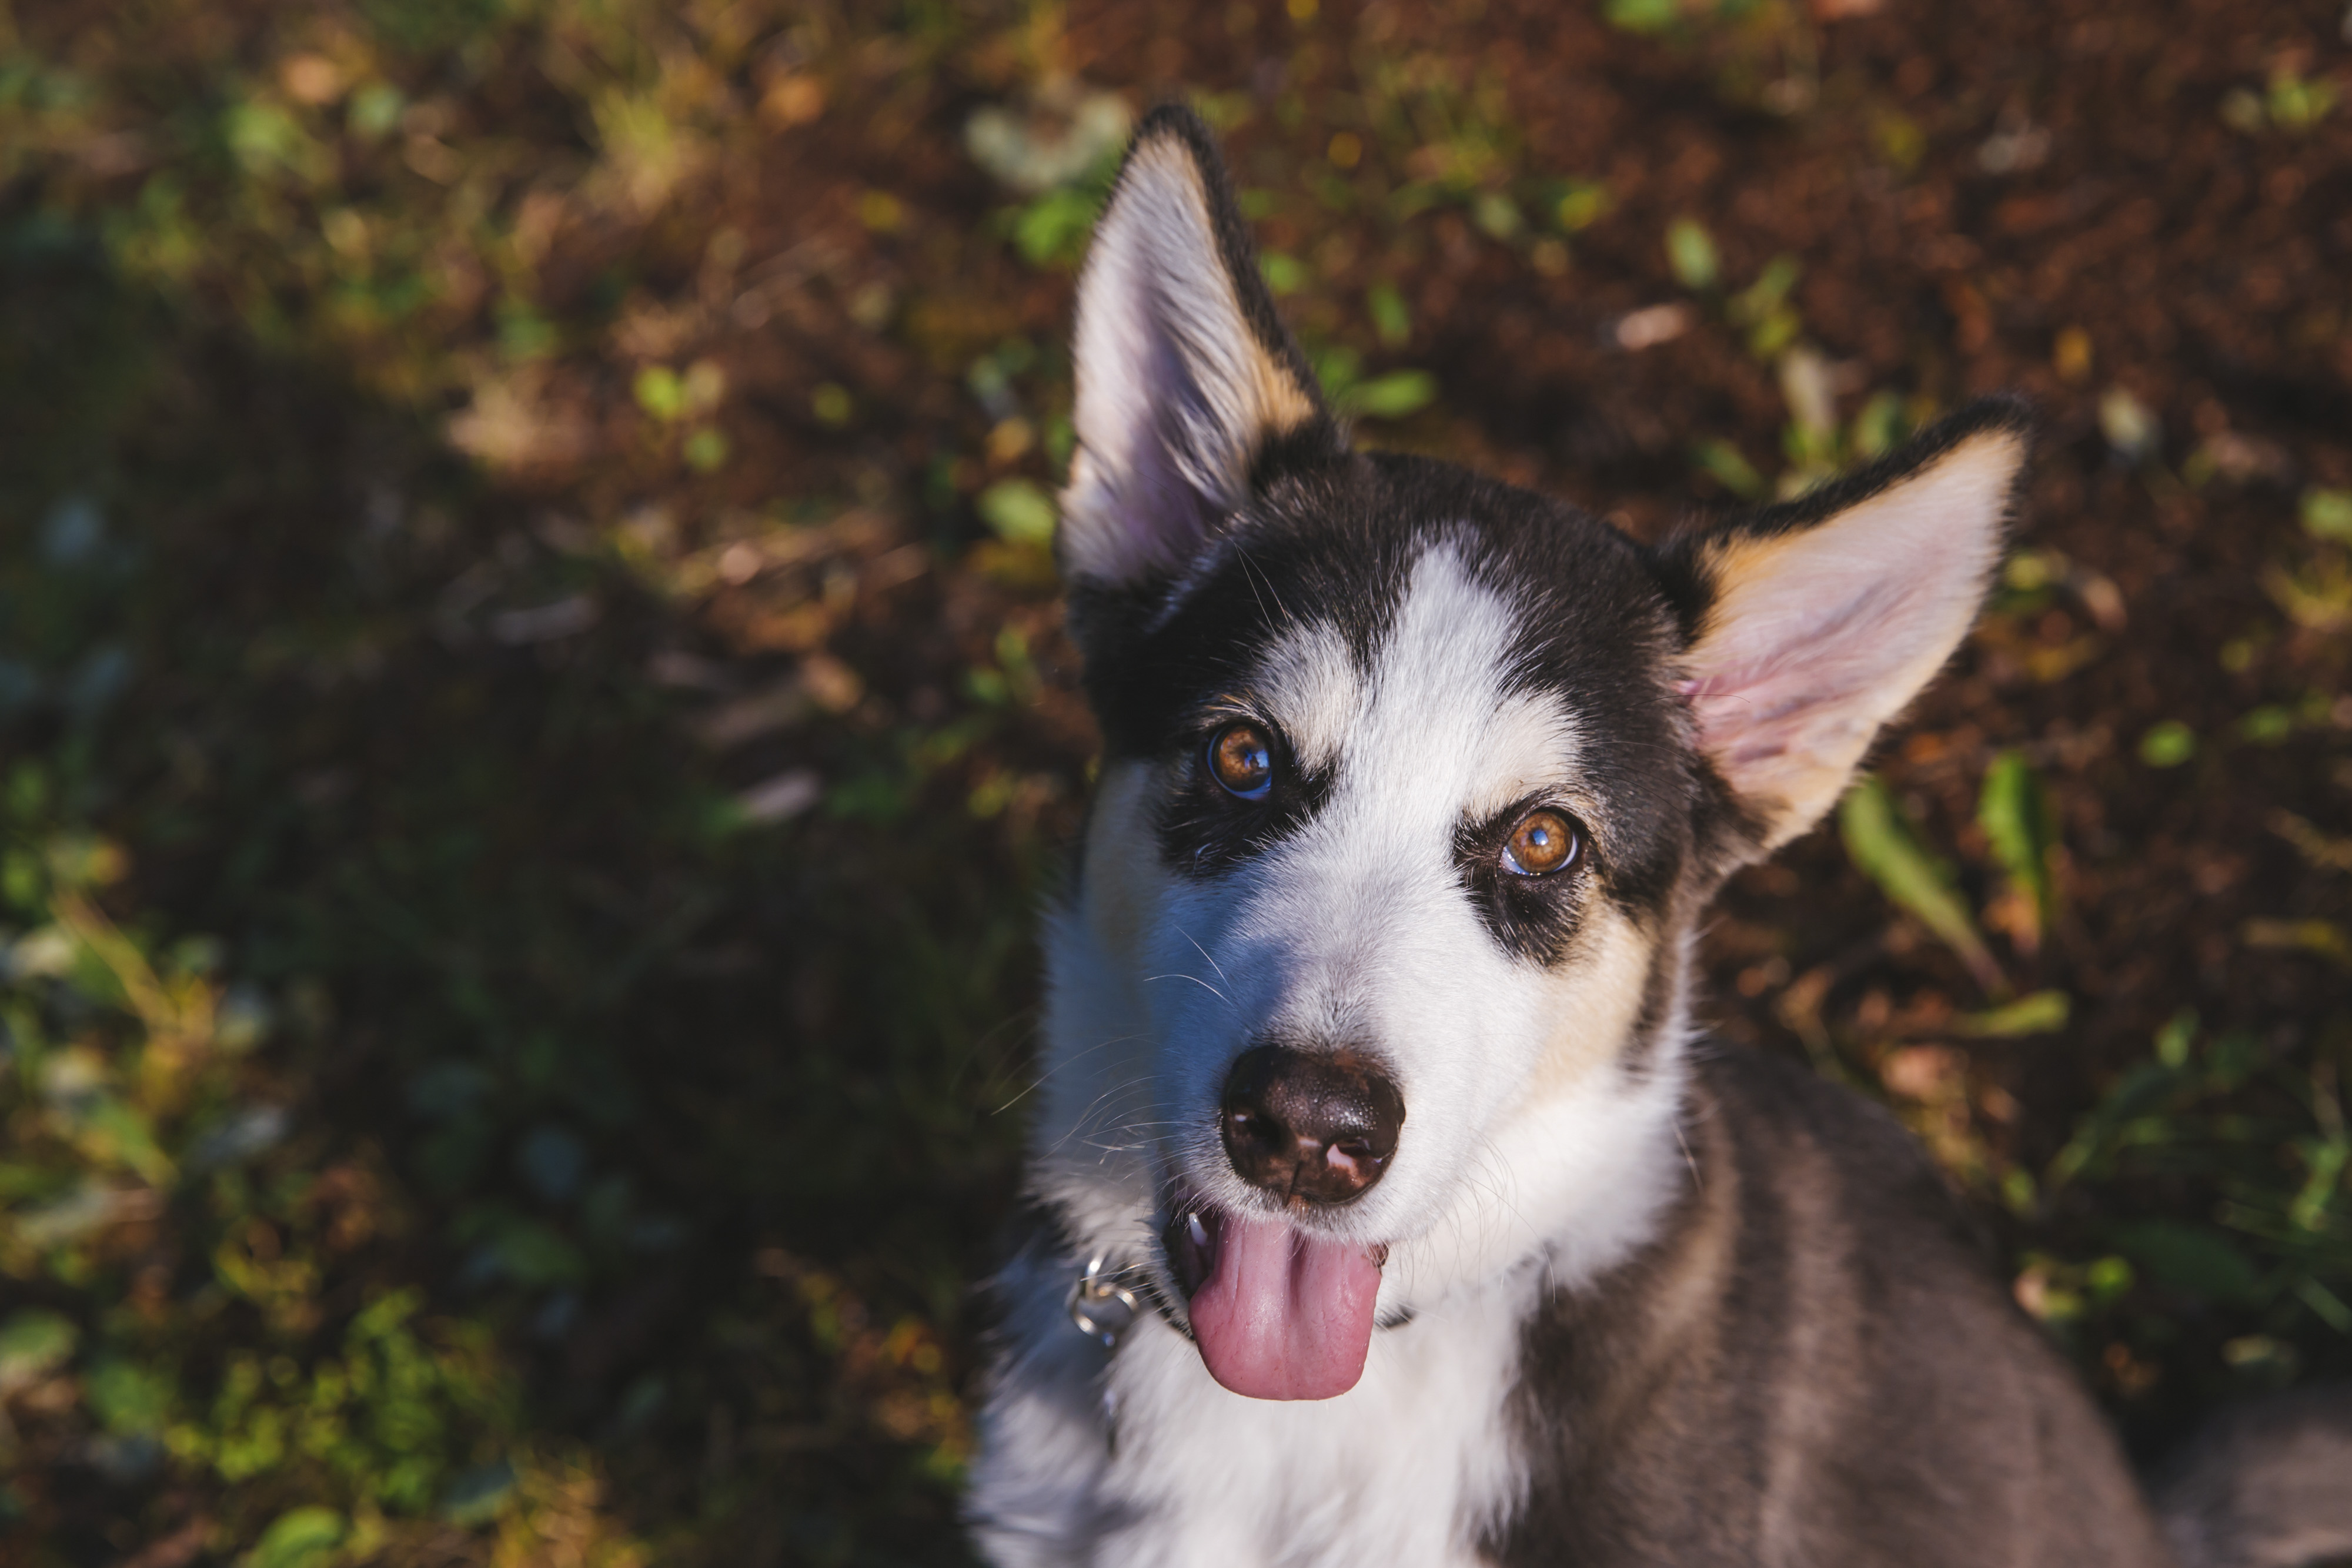 "<p>Meet Logen, the Husky/Malmute mix! Logen is a five-month-old boy who was a ""gift of happenstance."" A friend of his human was driving in Lynnwood when she saw him and his sister being sold on the side of the road. One phone call later and he now has a wonderful home in the big city! Logen likes anything edible, the Marymoor dog park and trips to the beach. He dislikes being alone and vegetables.{&nbsp;}The Seattle RUFFined Spotlight is a weekly profile of local pets living and loving life in the PNW. If you or someone you know has a pet you'd like featured, email us at hello@seattlerefined.com or tag #SeattleRUFFined and your furbaby could be the next spotlighted! (Image: Sunita Martini / Seattle Refined).</p>"